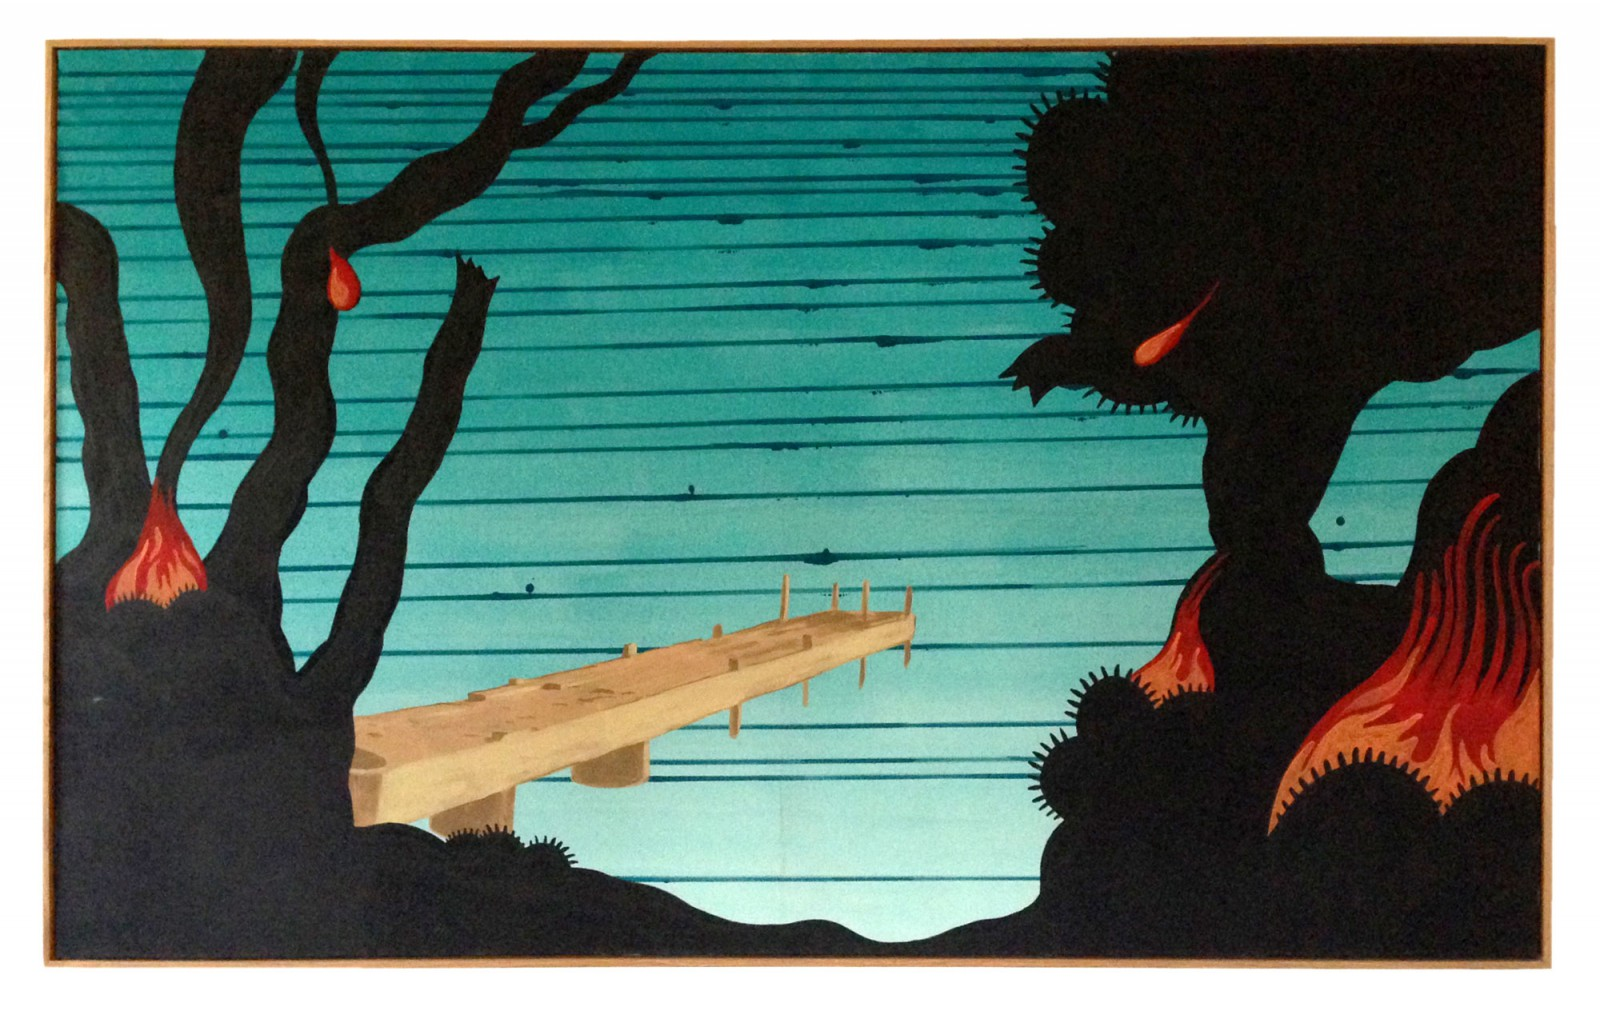 Kim Nekarda: Untitled, 2003, vinyl color on cotton, framed, 90 x 150 cm, private collection